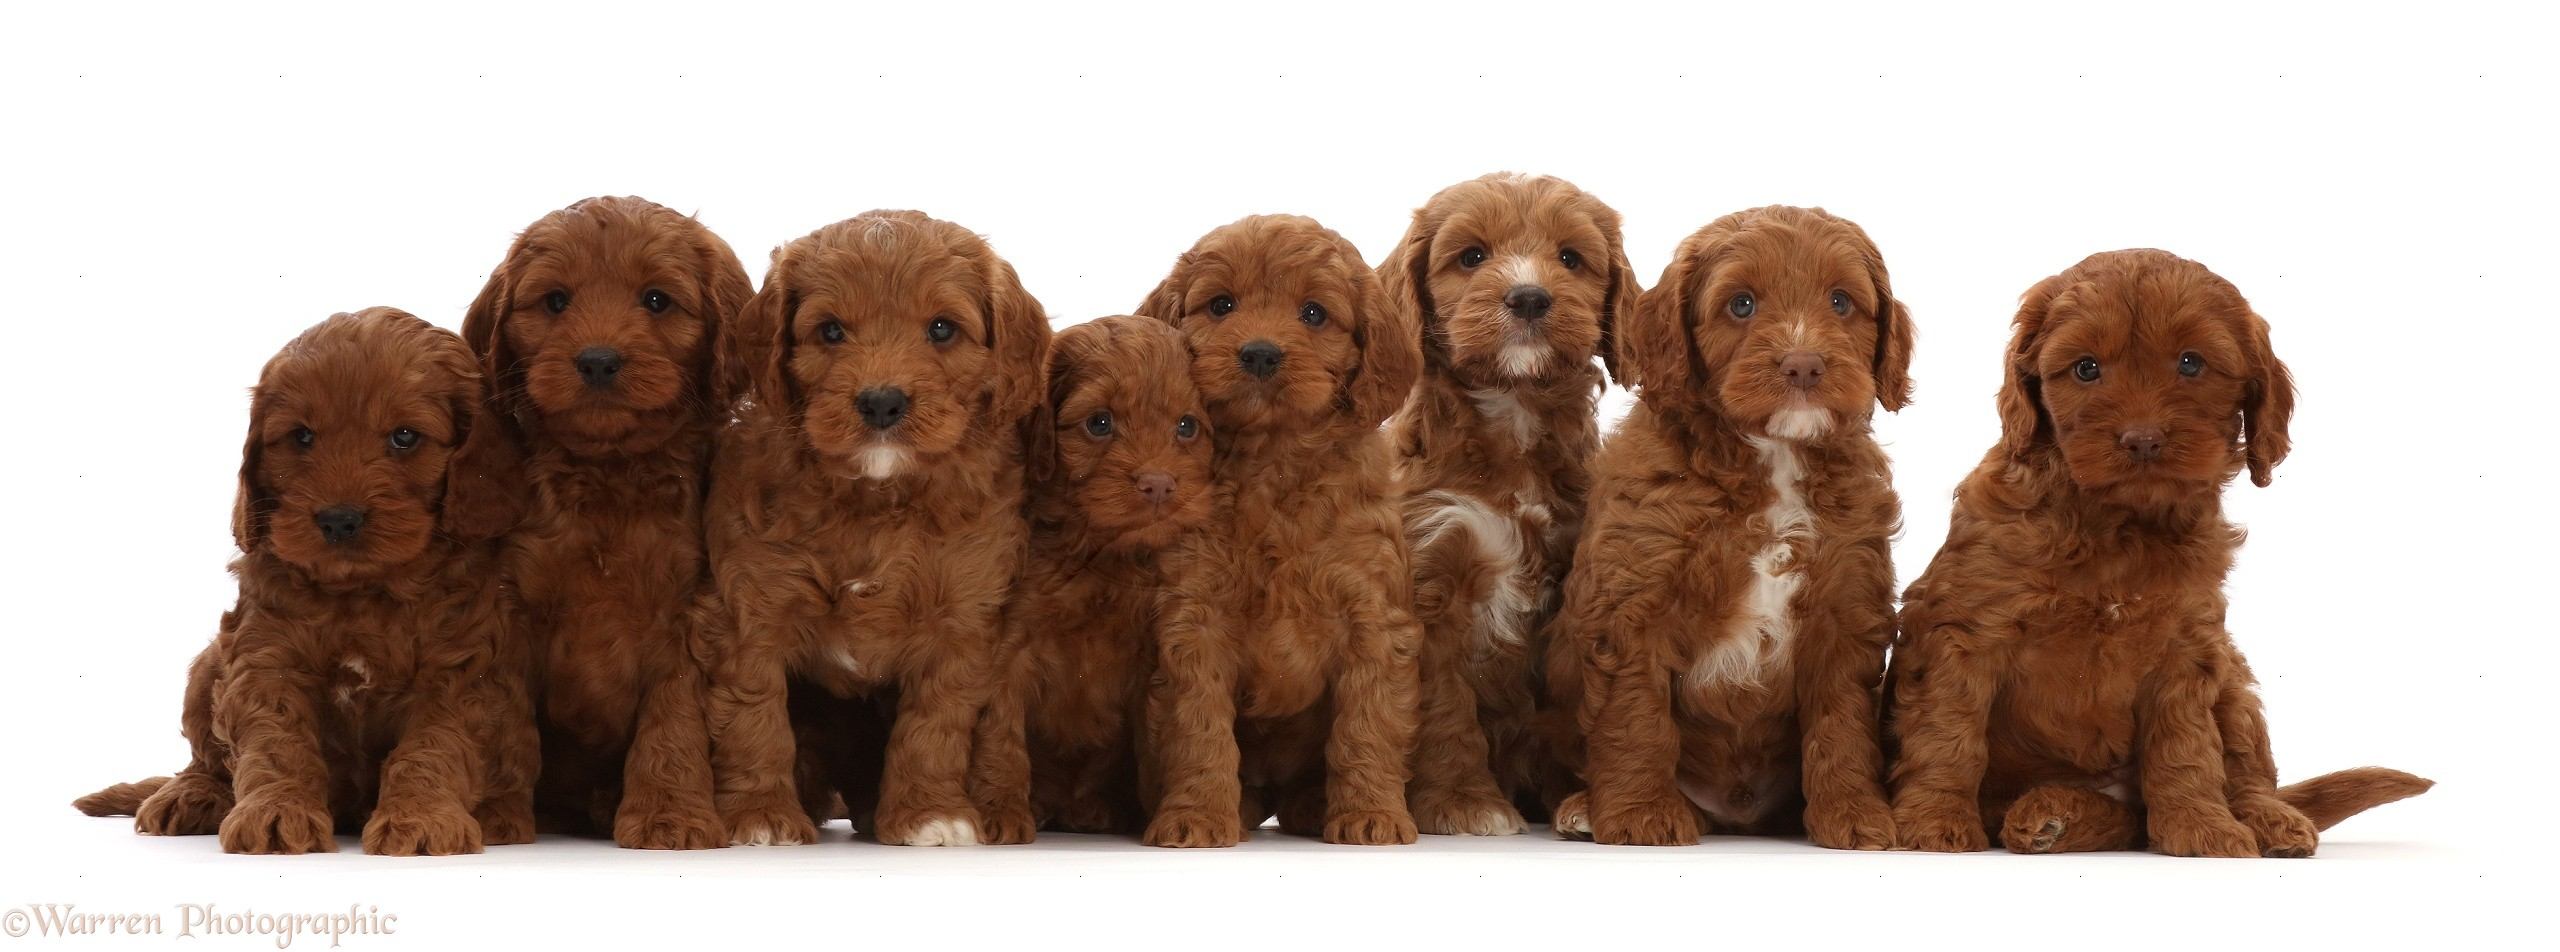 Dogs Seven Red Cockapoo Puppies 6 Weeks Old Sitting In A Row Photo Wp48763